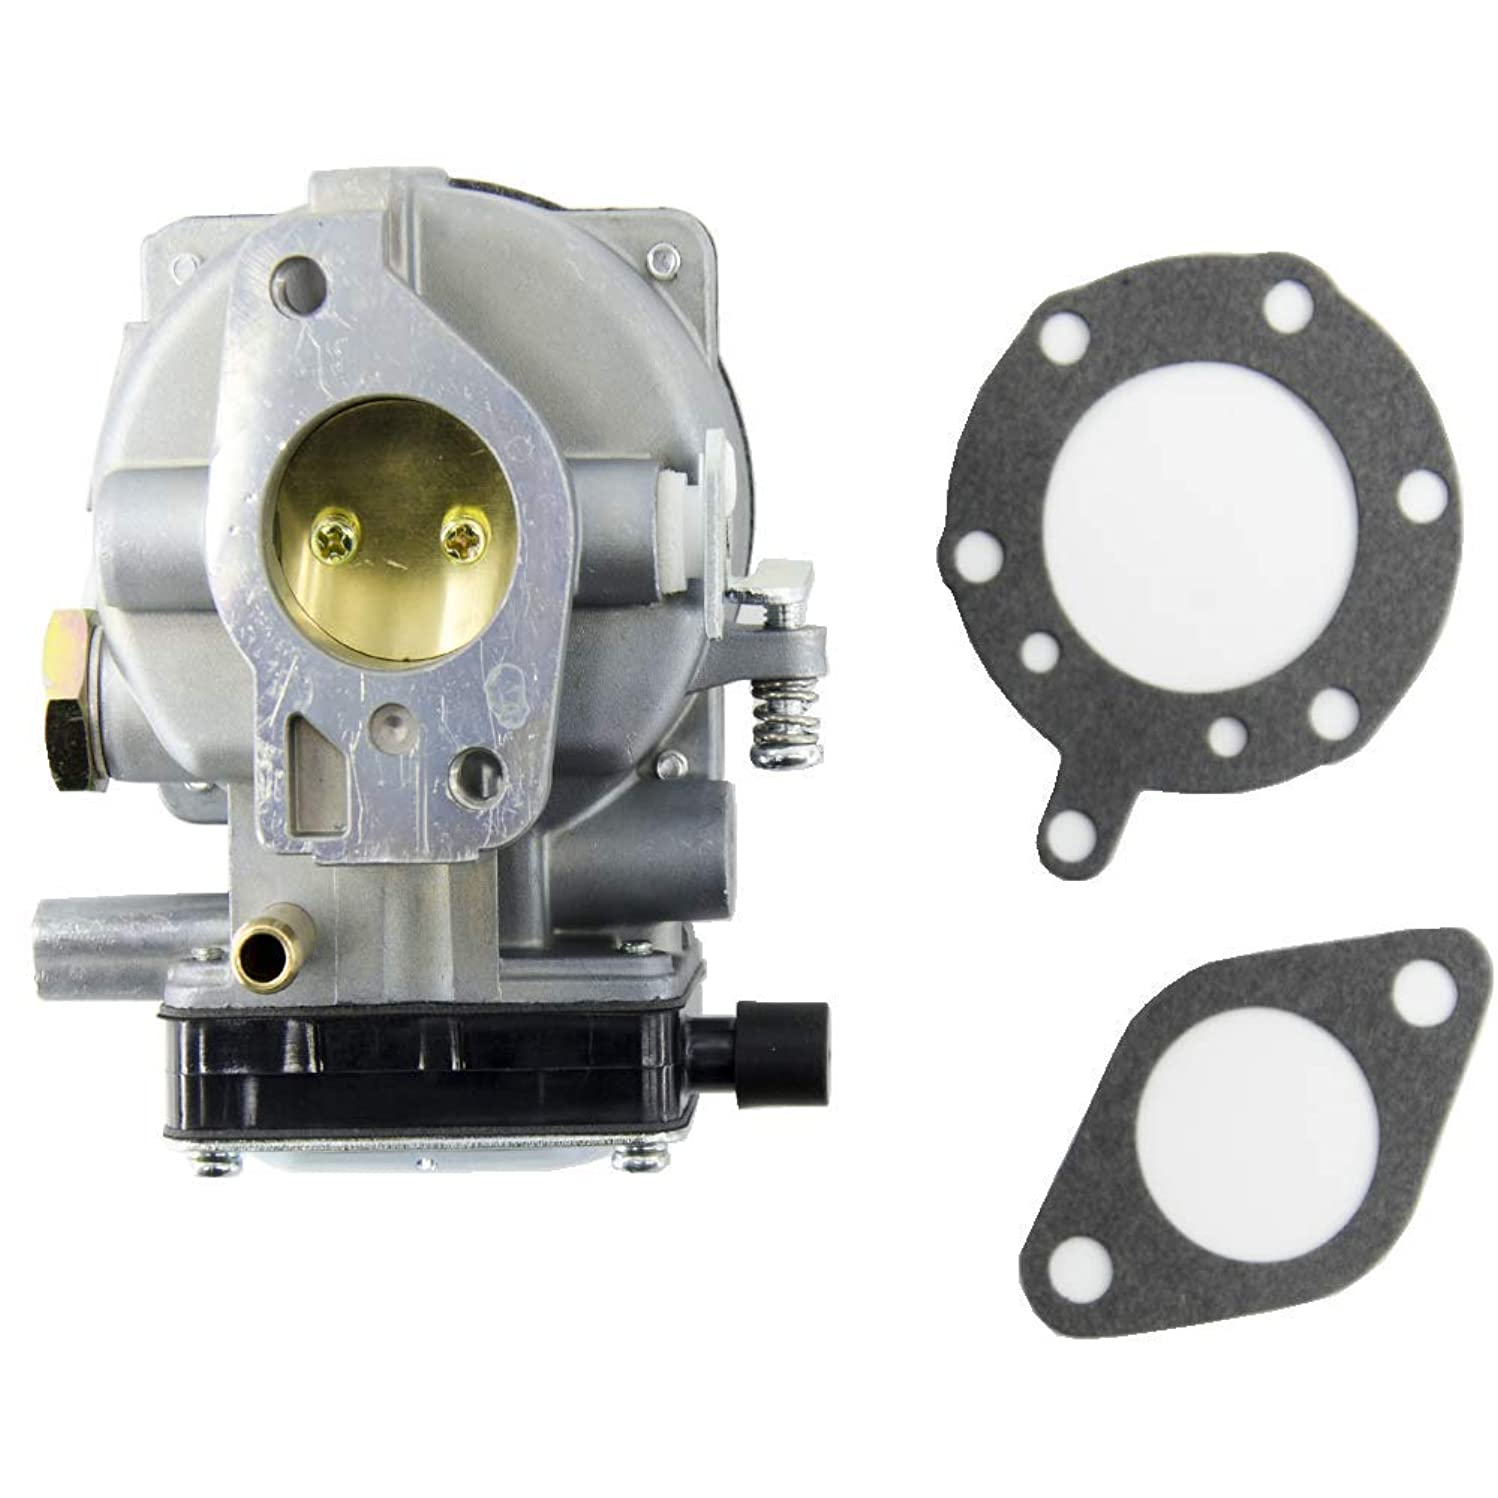 693480 Carburetor-Carb for Briggs & Stratton 693480 693479 694056 Replace for Models 499306 495181 495026 499305 499307